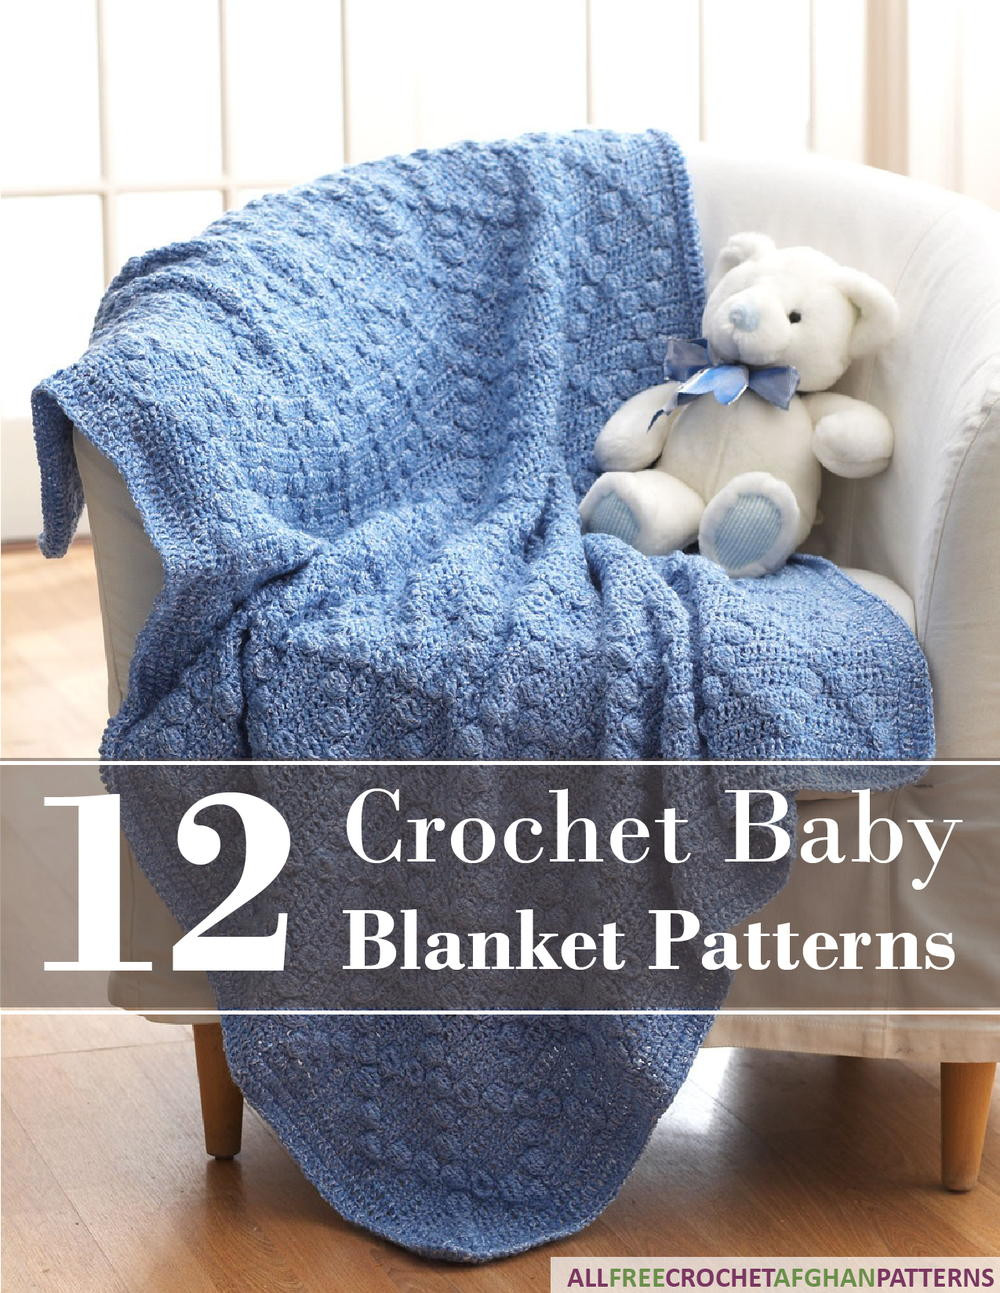 Baby Boy Crochet Blanket Patterns Elegant 12 Crochet Baby Blanket Patterns Free Ebook Of Baby Boy Crochet Blanket Patterns Lovely Navy and Teal for A Baby Boy